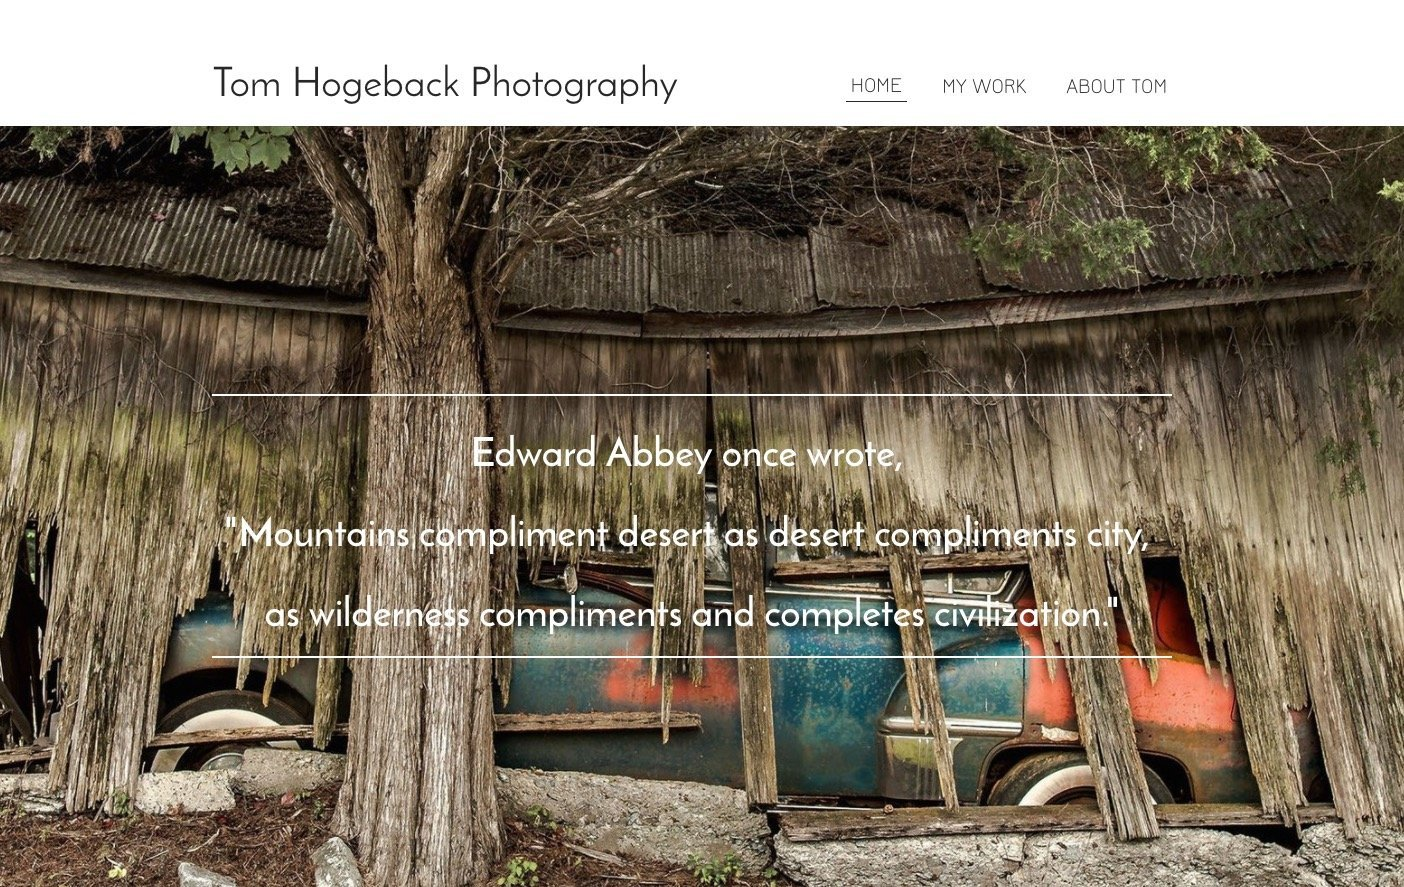 TOM HOGEBACK PHOTOGRAPHY